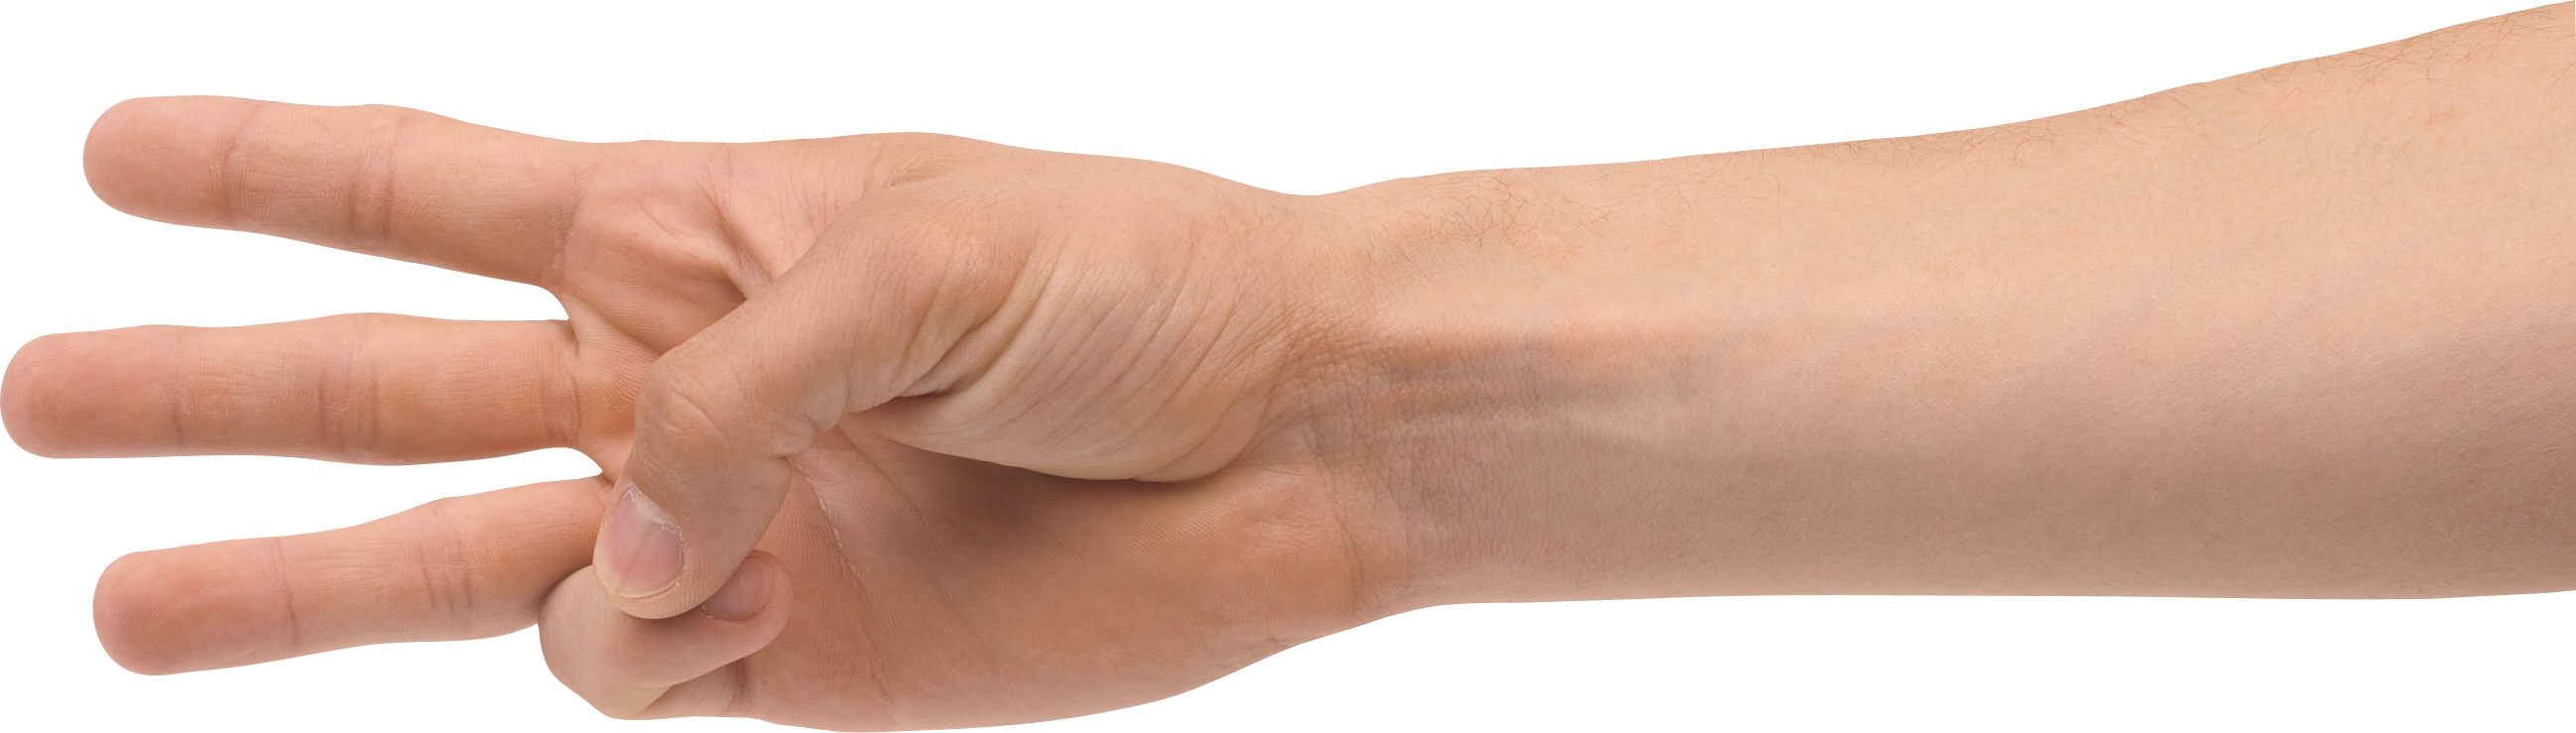 Fingers PNG Image